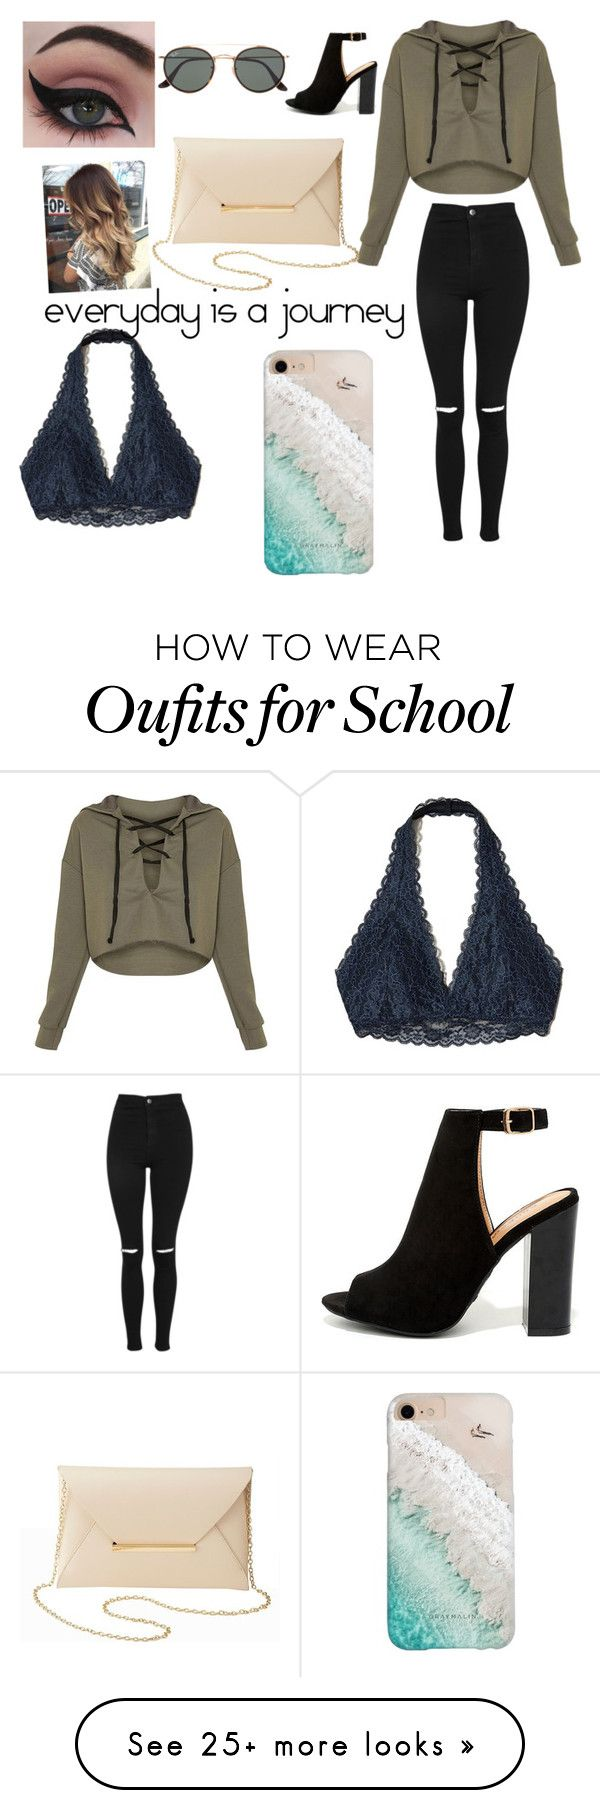 """school look"" by kayla92104 on Polyvore featuring Topshop, Bamboo, Gray Malin, Ray-Ban, Charlotte Russe, Concrete Minerals and Hollister Co."